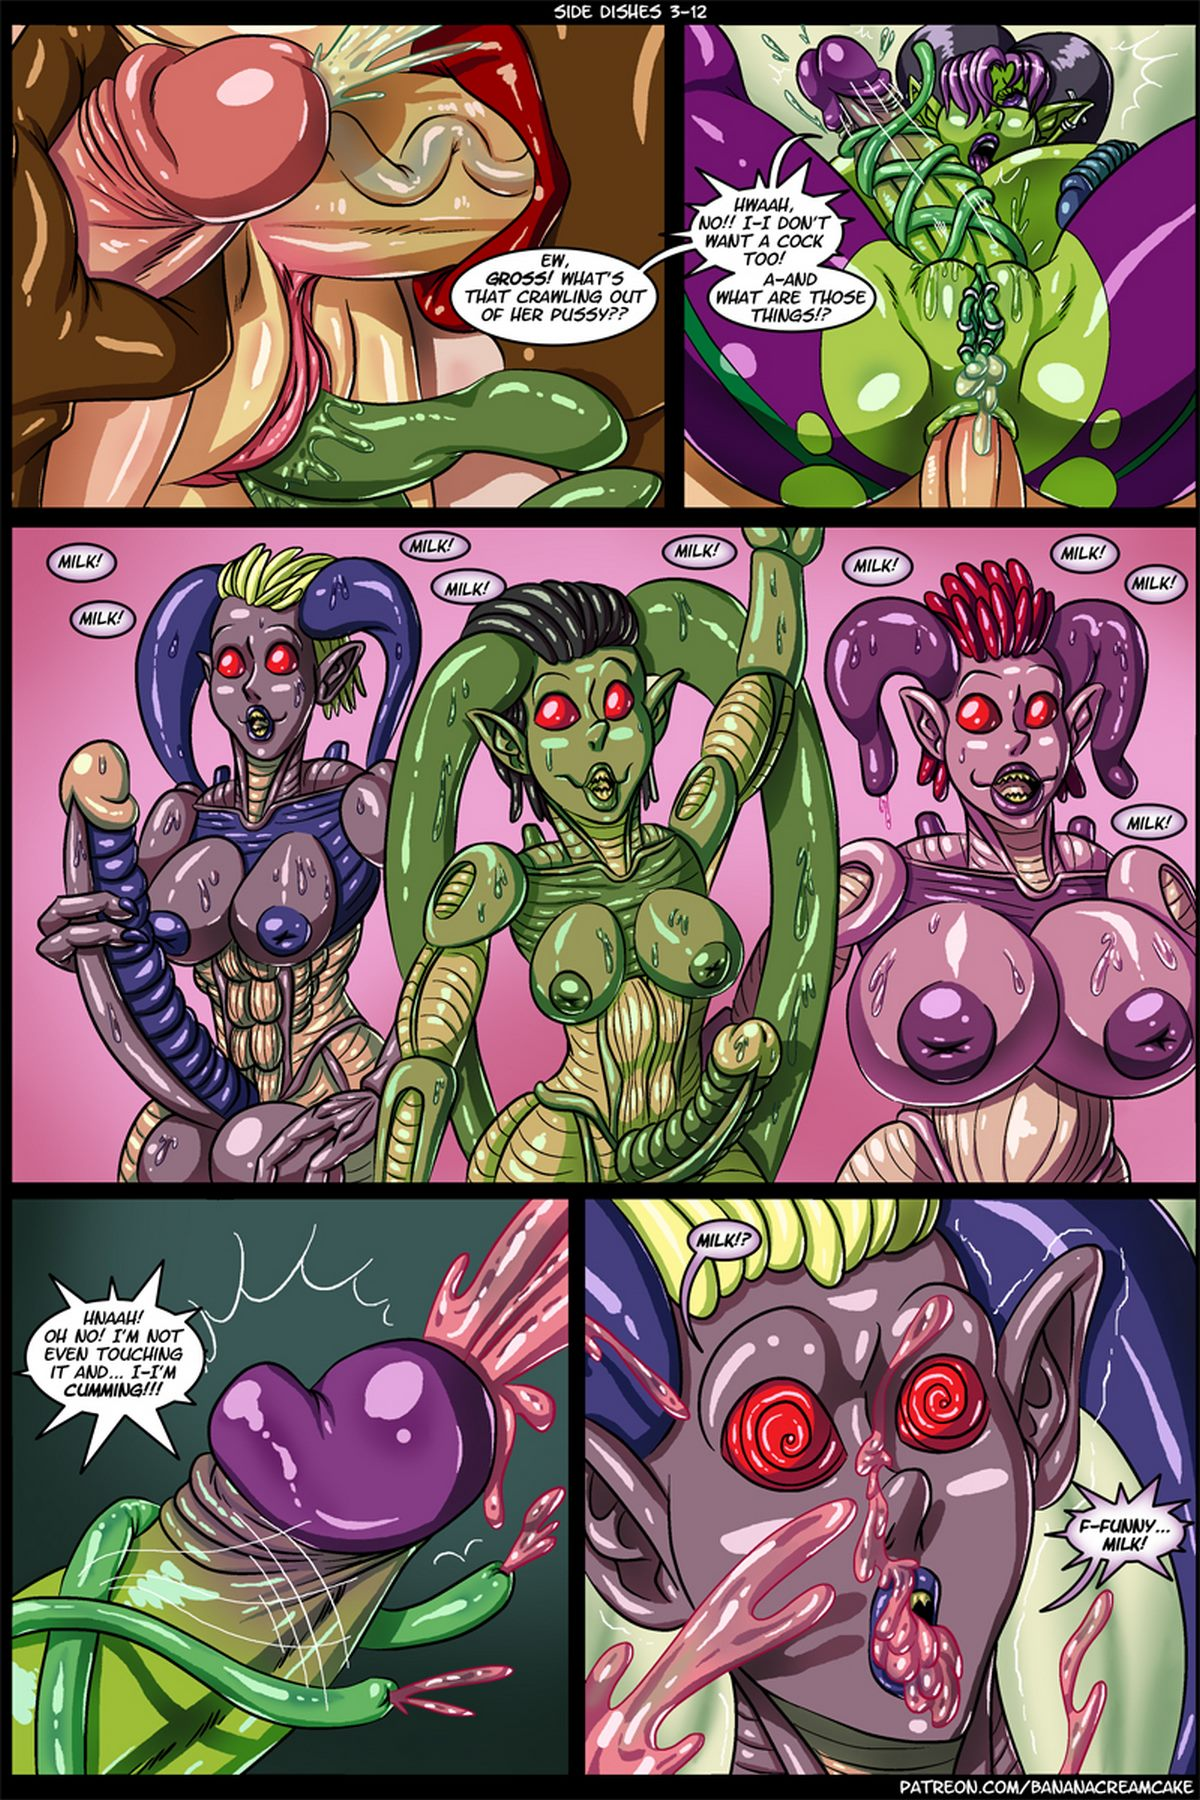 Transmorpher DDS- Side Dishes Ch. 3